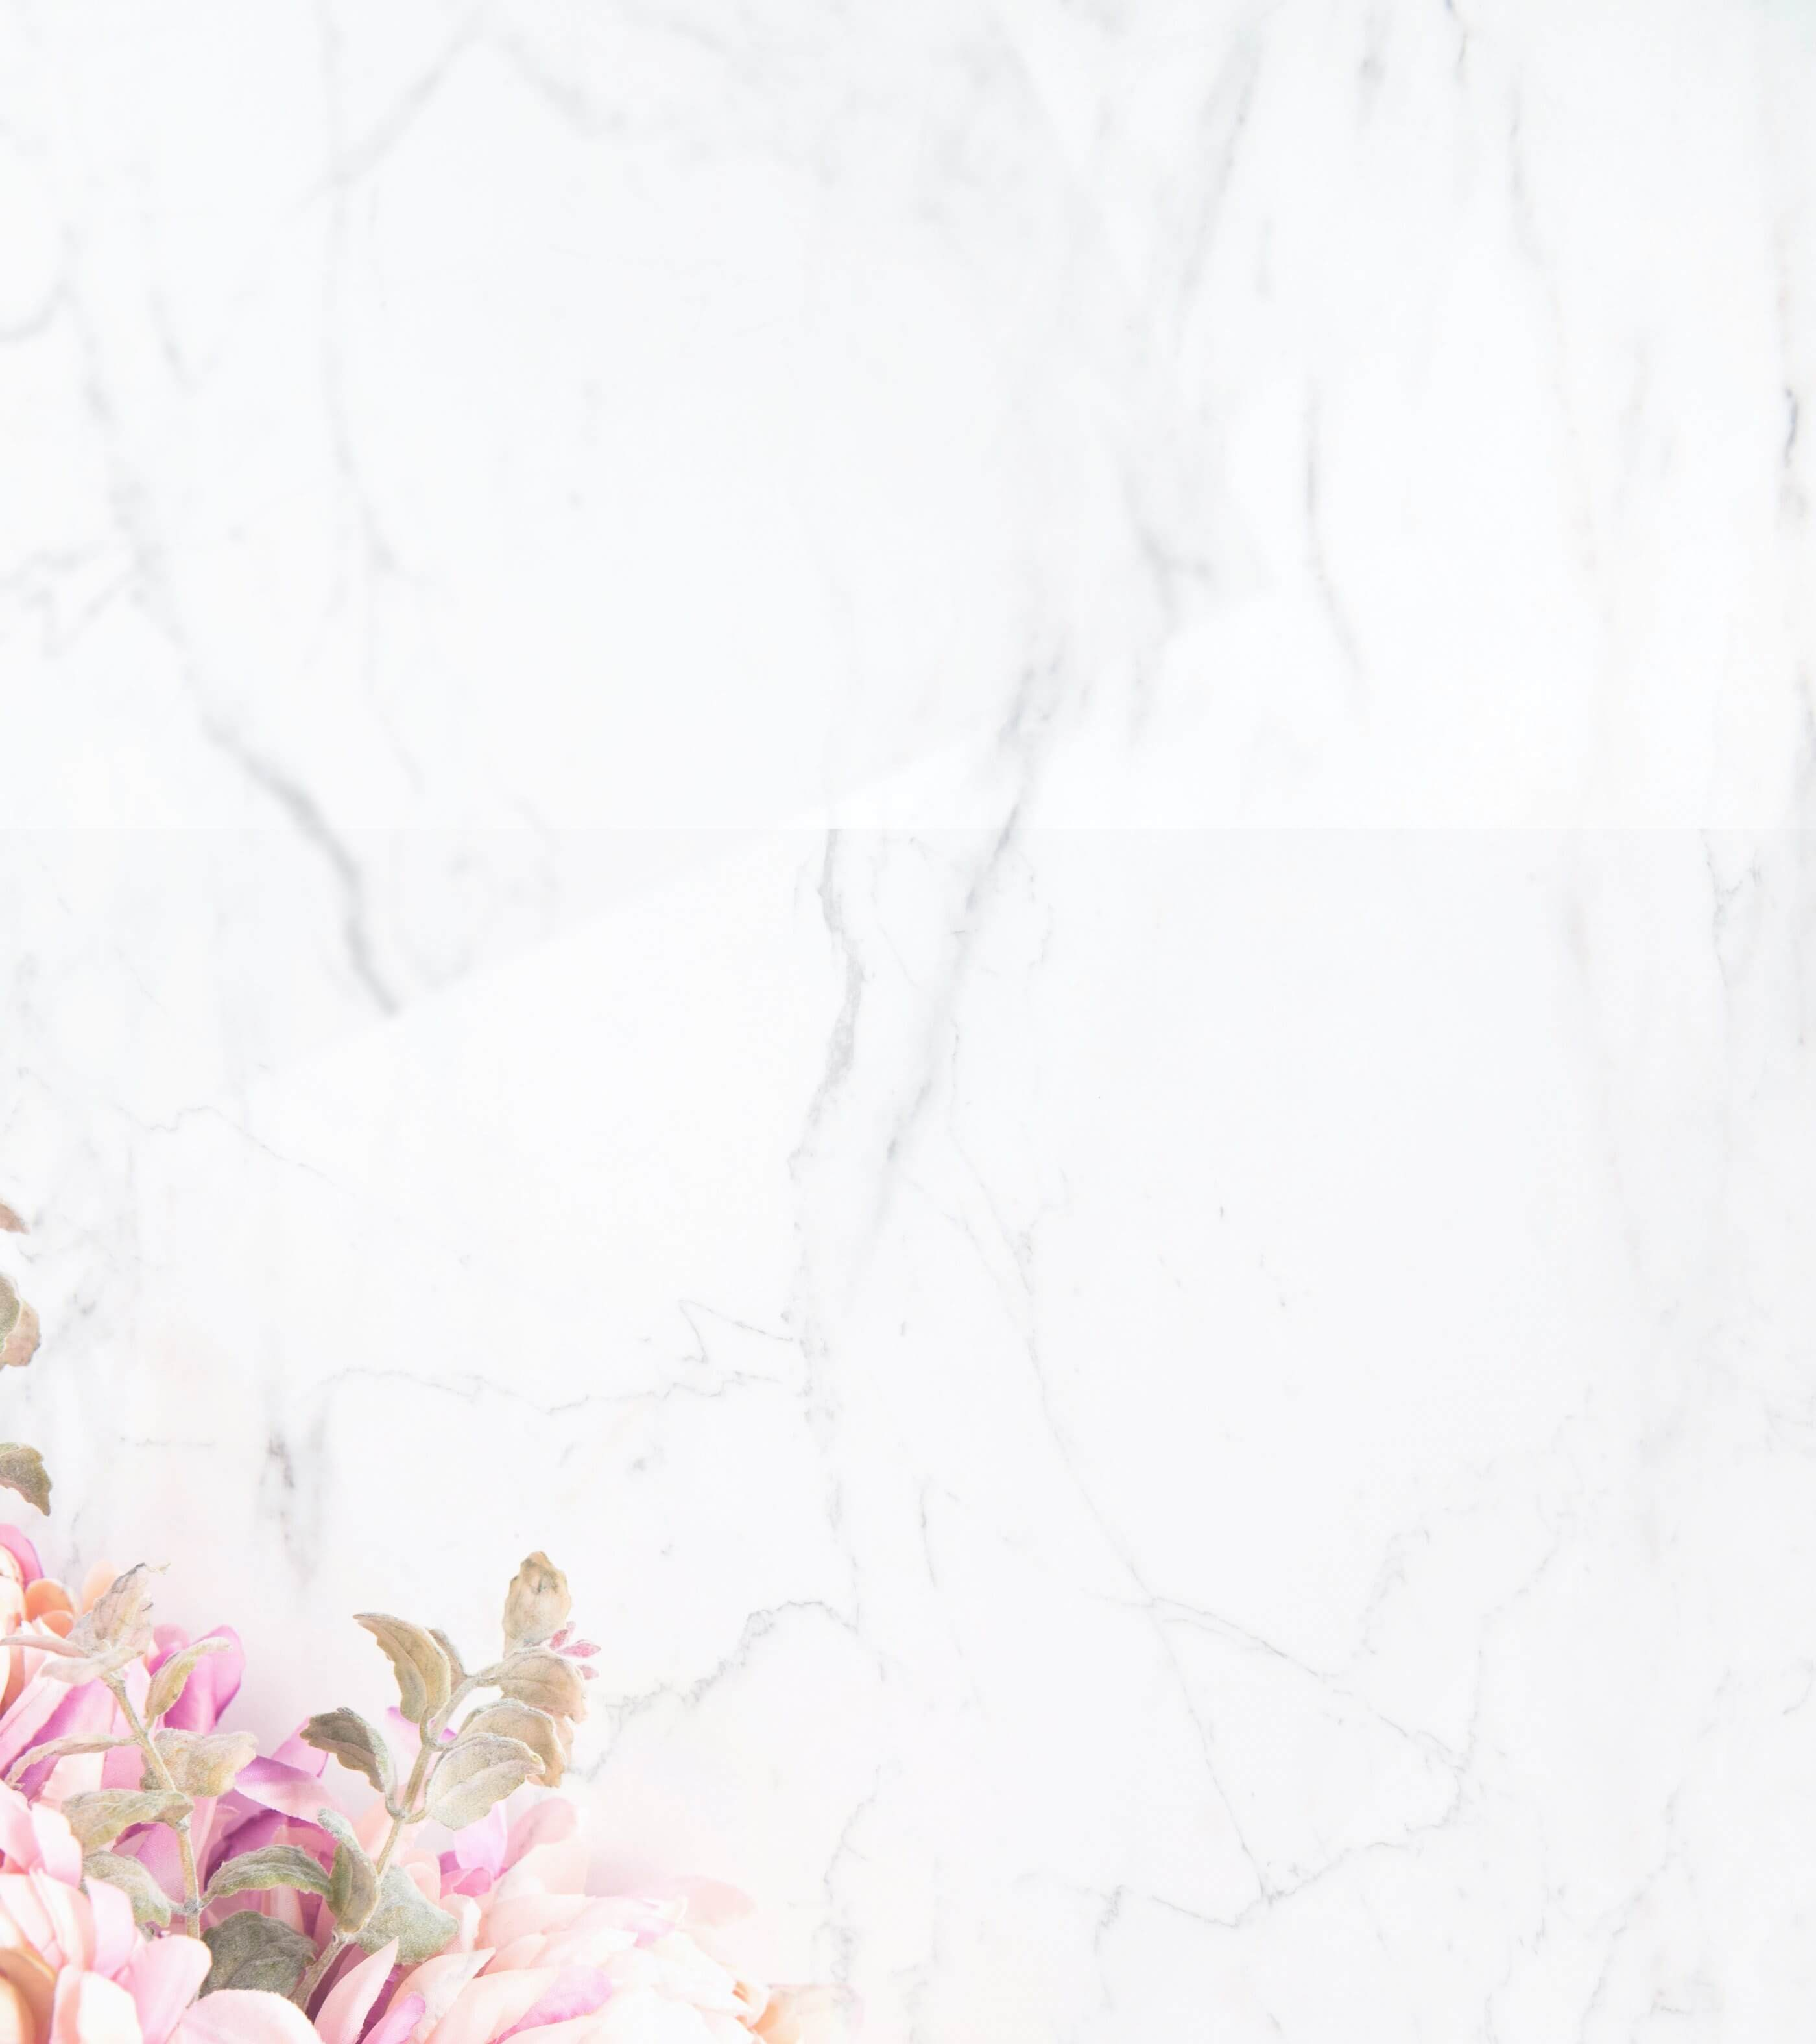 Marble and flowers background